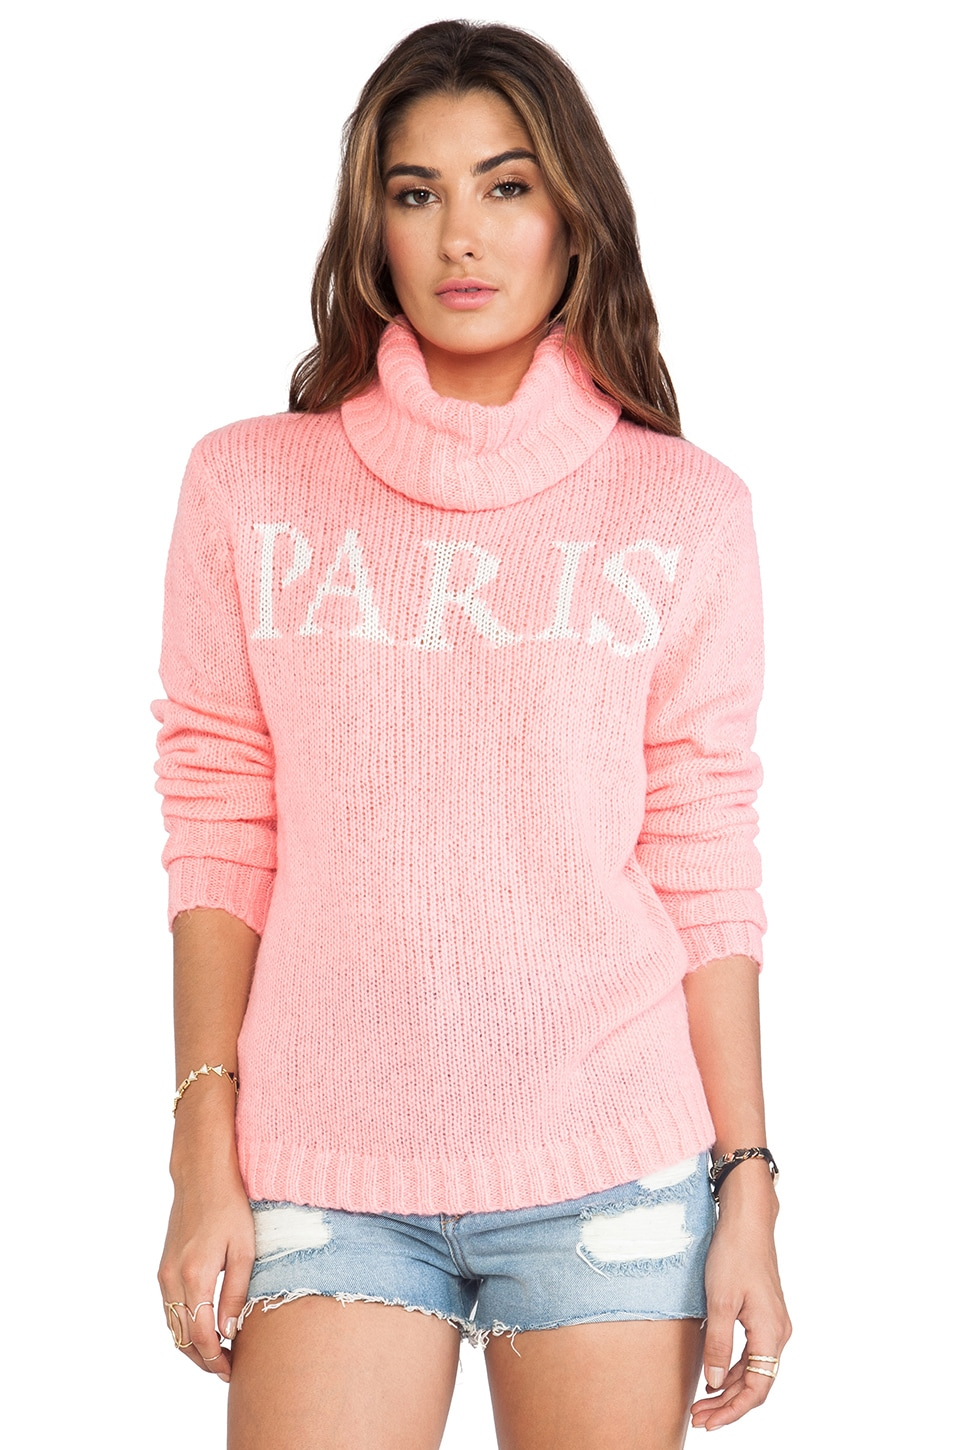 Wildfox Couture White Label Paris Is Home Seatle Sweater in Neon Sign